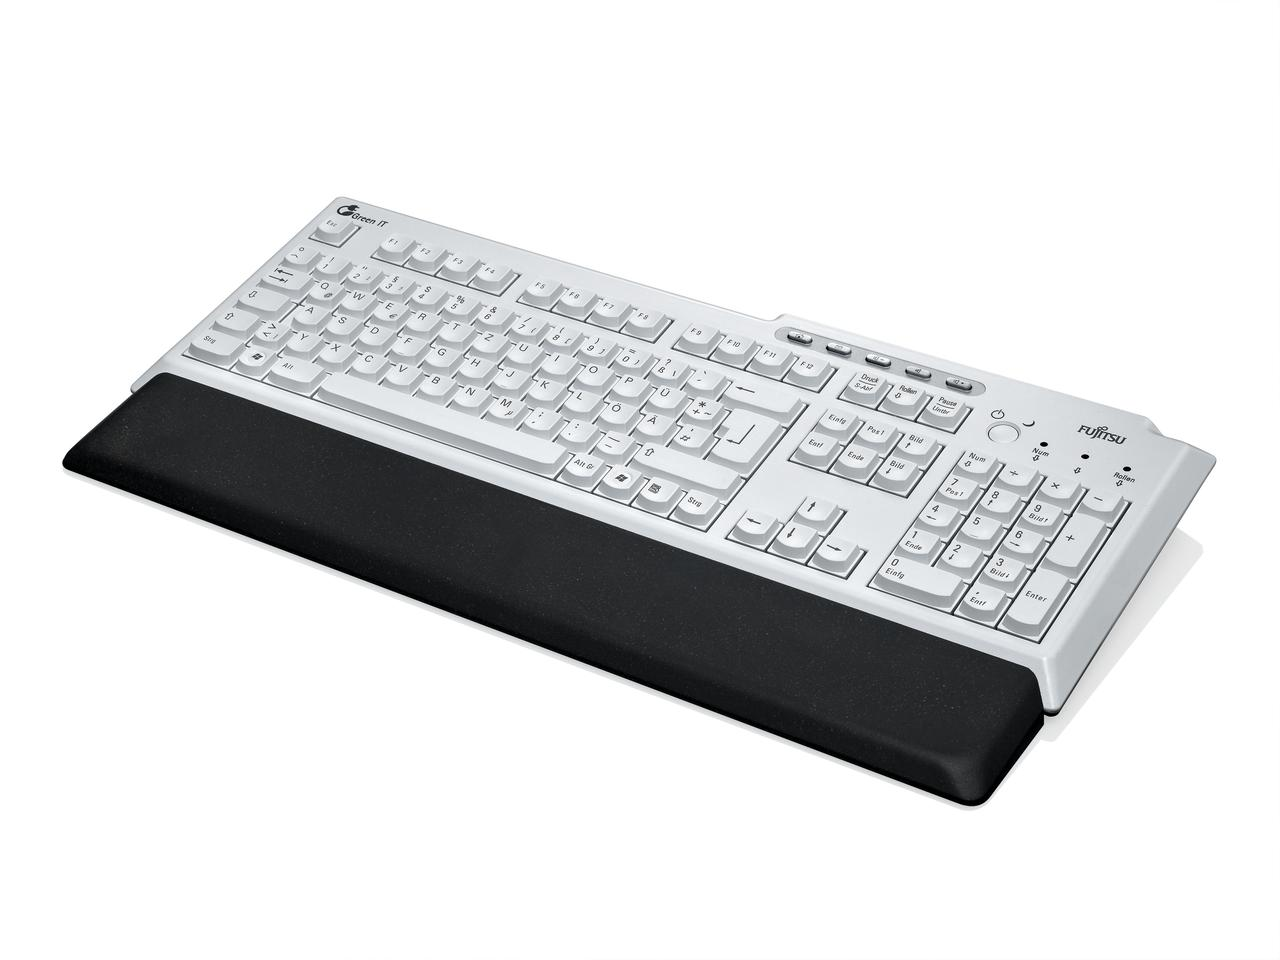 Fuijitsu's KBPC PX ECO keyboard, which is manufactured using 45 per cent less plastic than others on the market